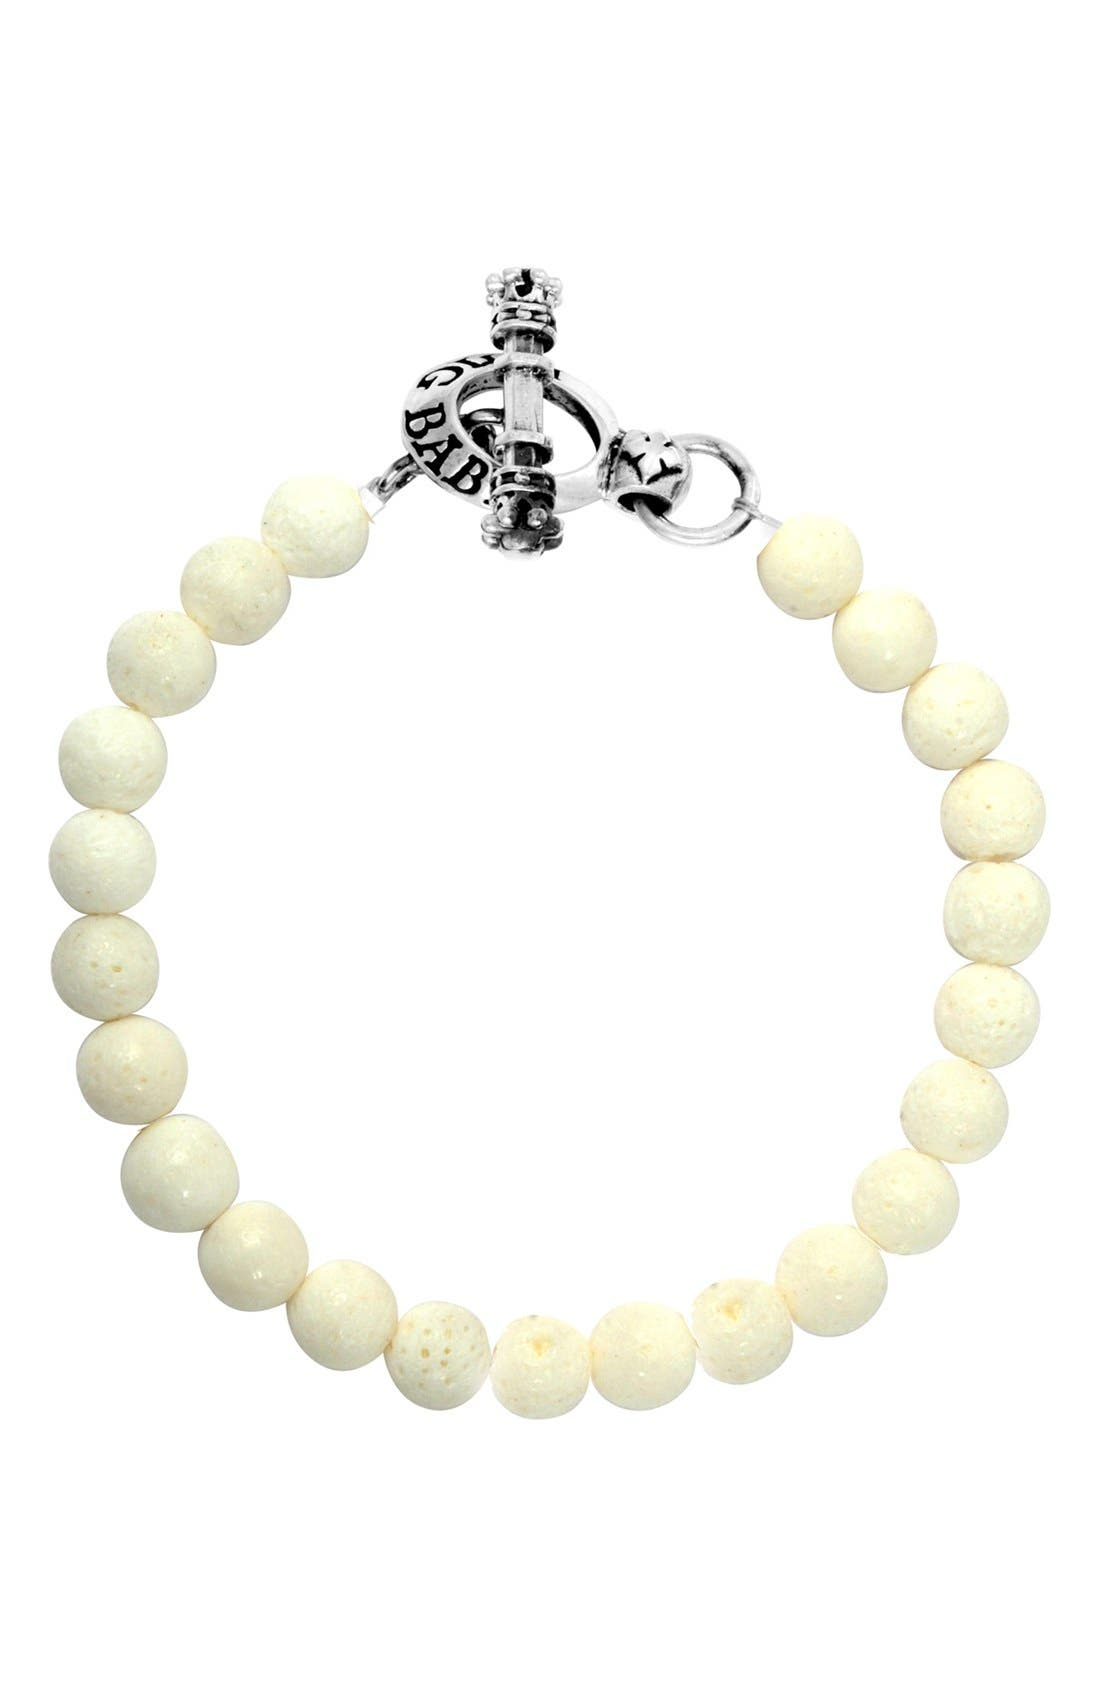 Coral Bead Bracelet,                         Main,                         color, Silver/ White